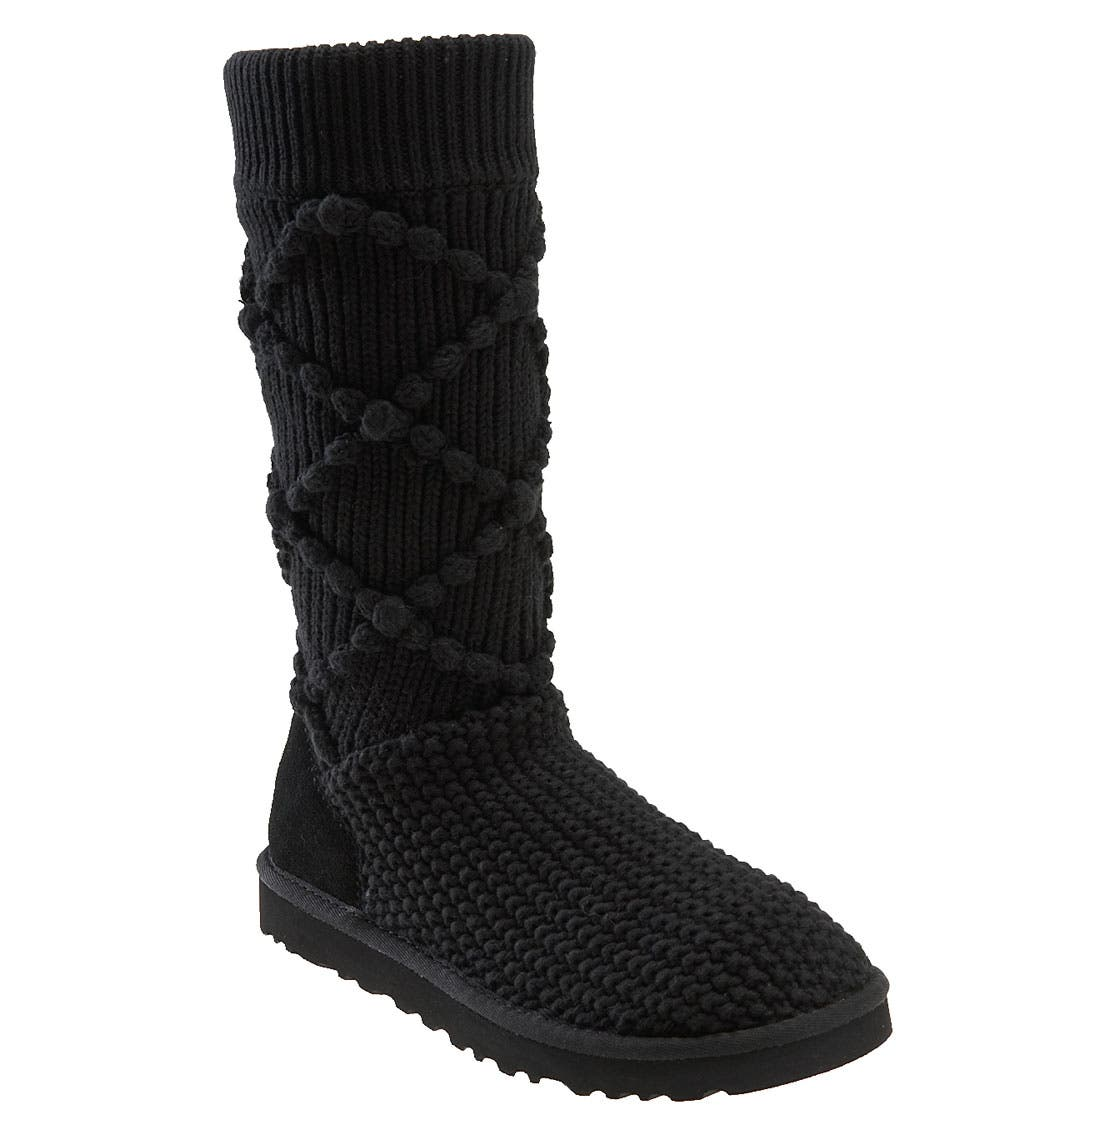 UGG<SUP>®</SUP> Australia 'Classic Argyle' Sweater Knit Boot, Main, color, 001